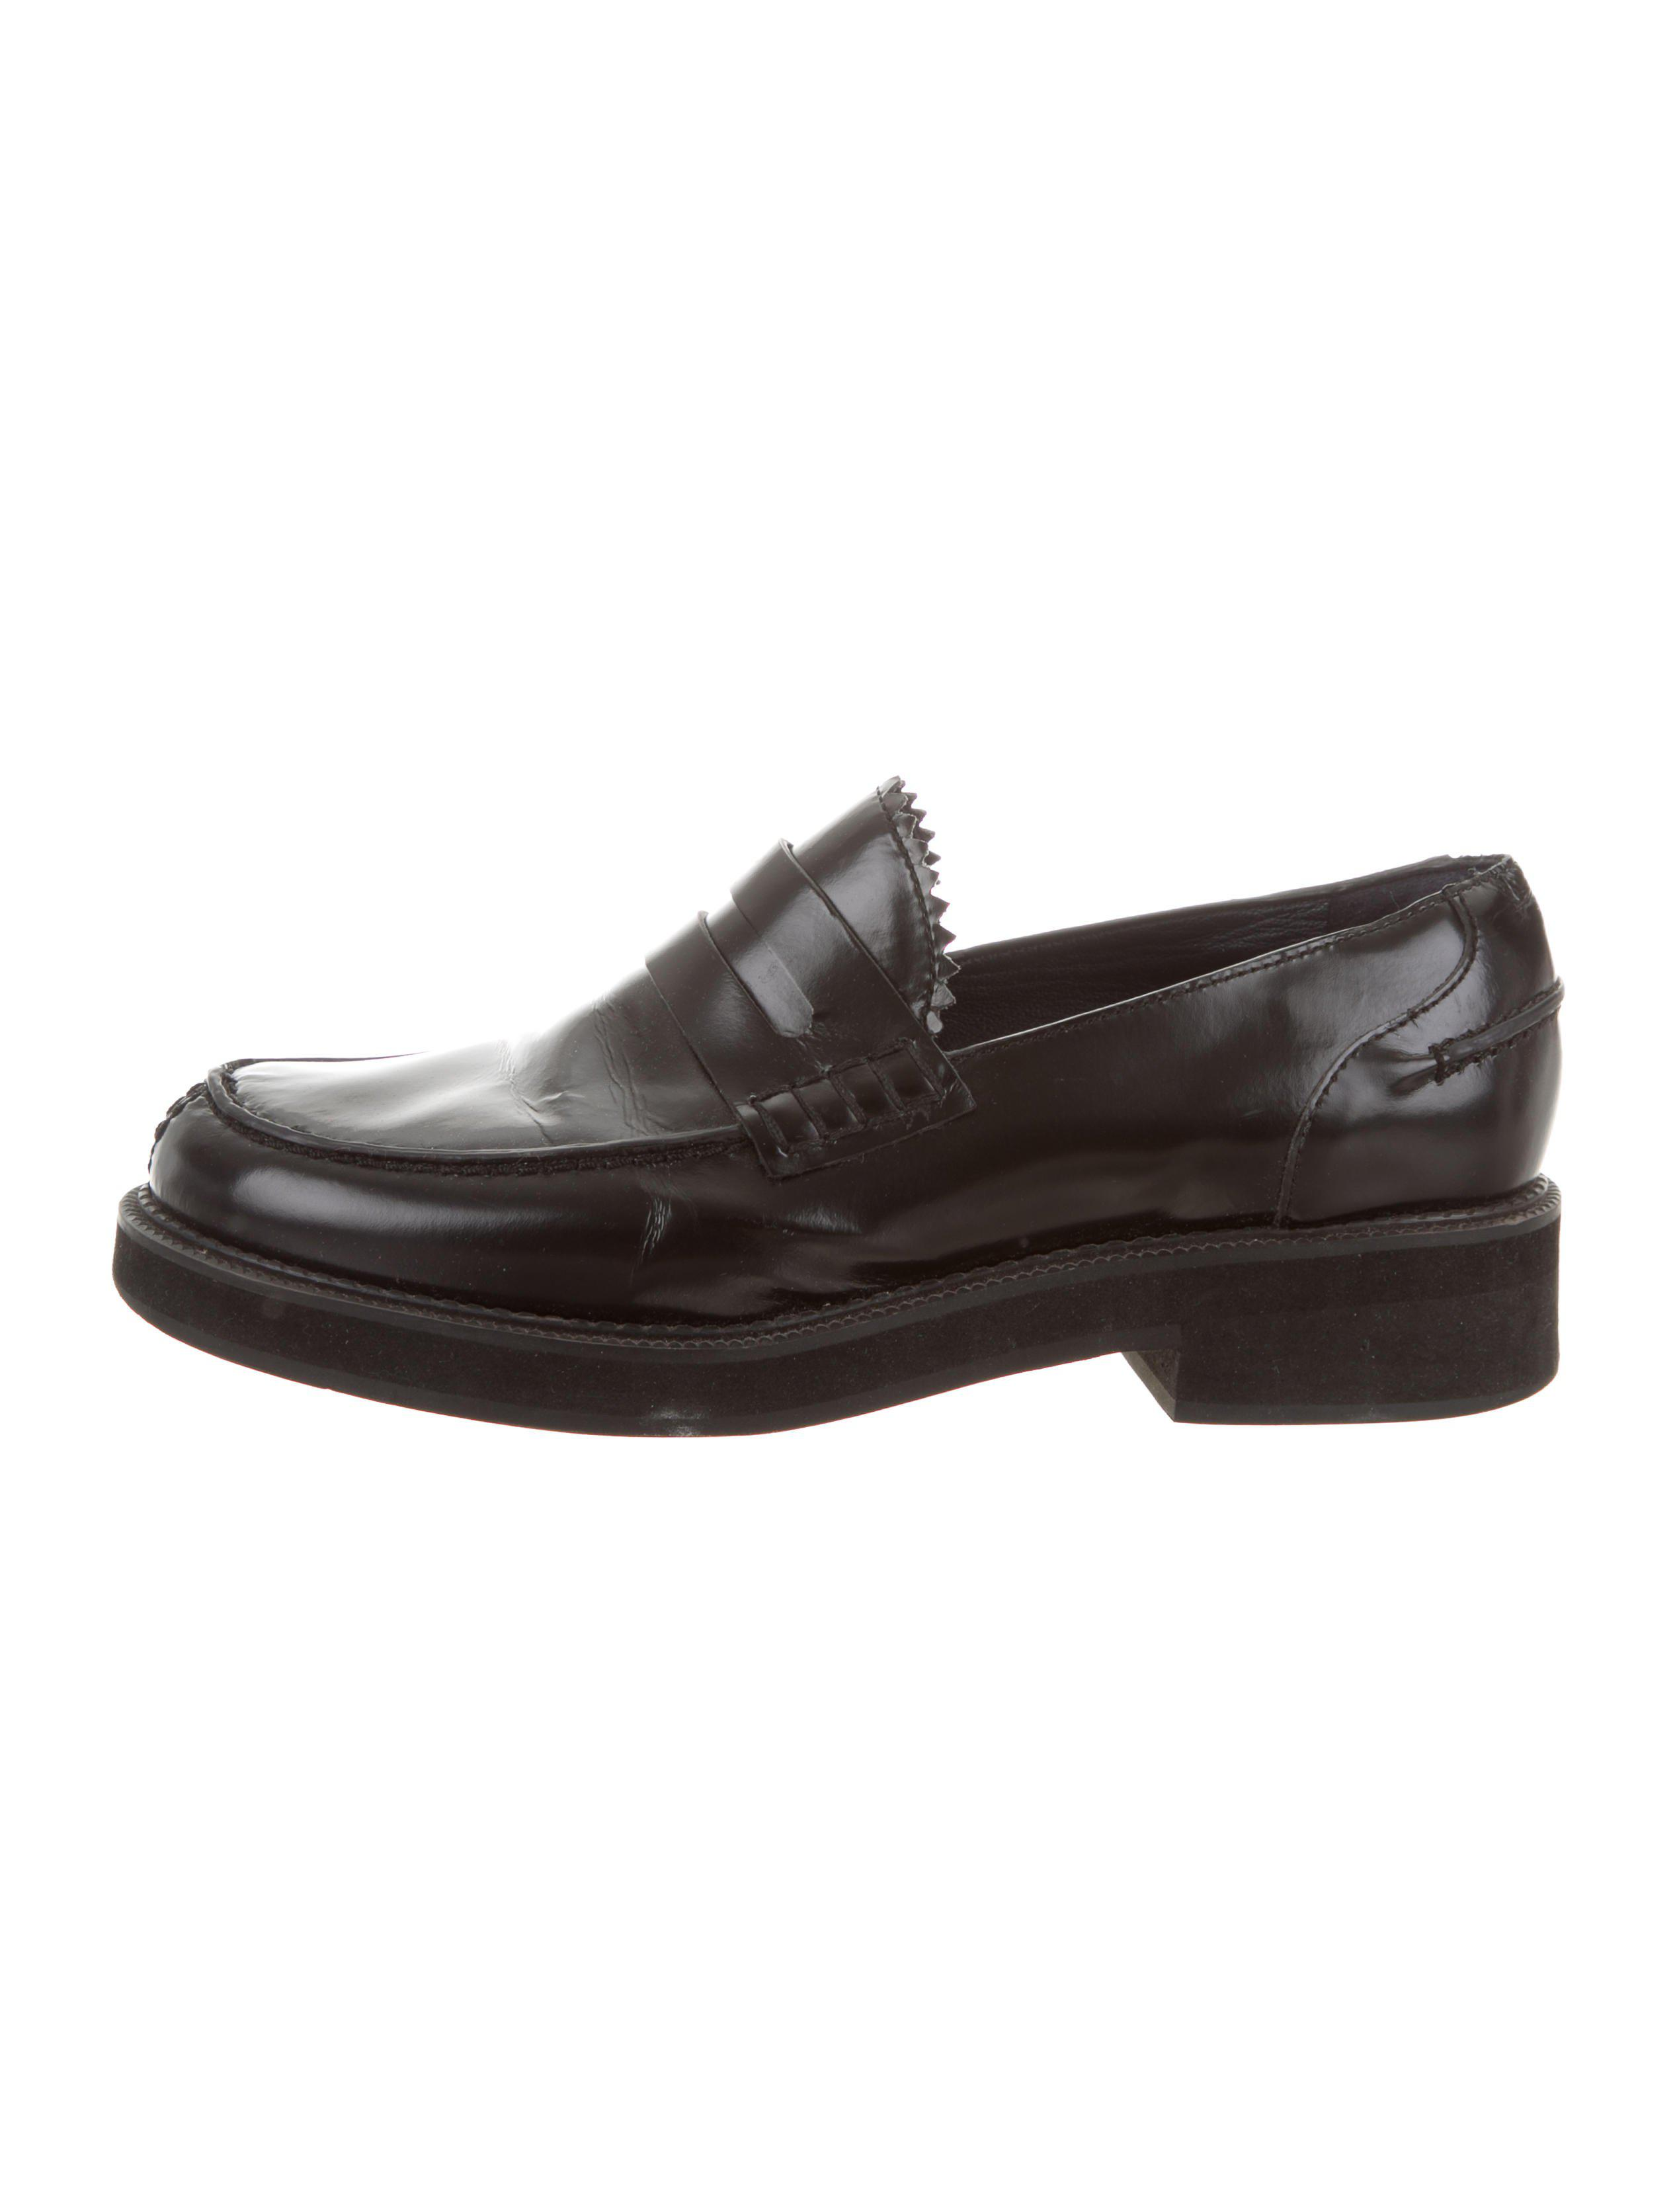 Jil Sander Navy Leather Round-Toe Loafers best place to buy 9dHRbcv